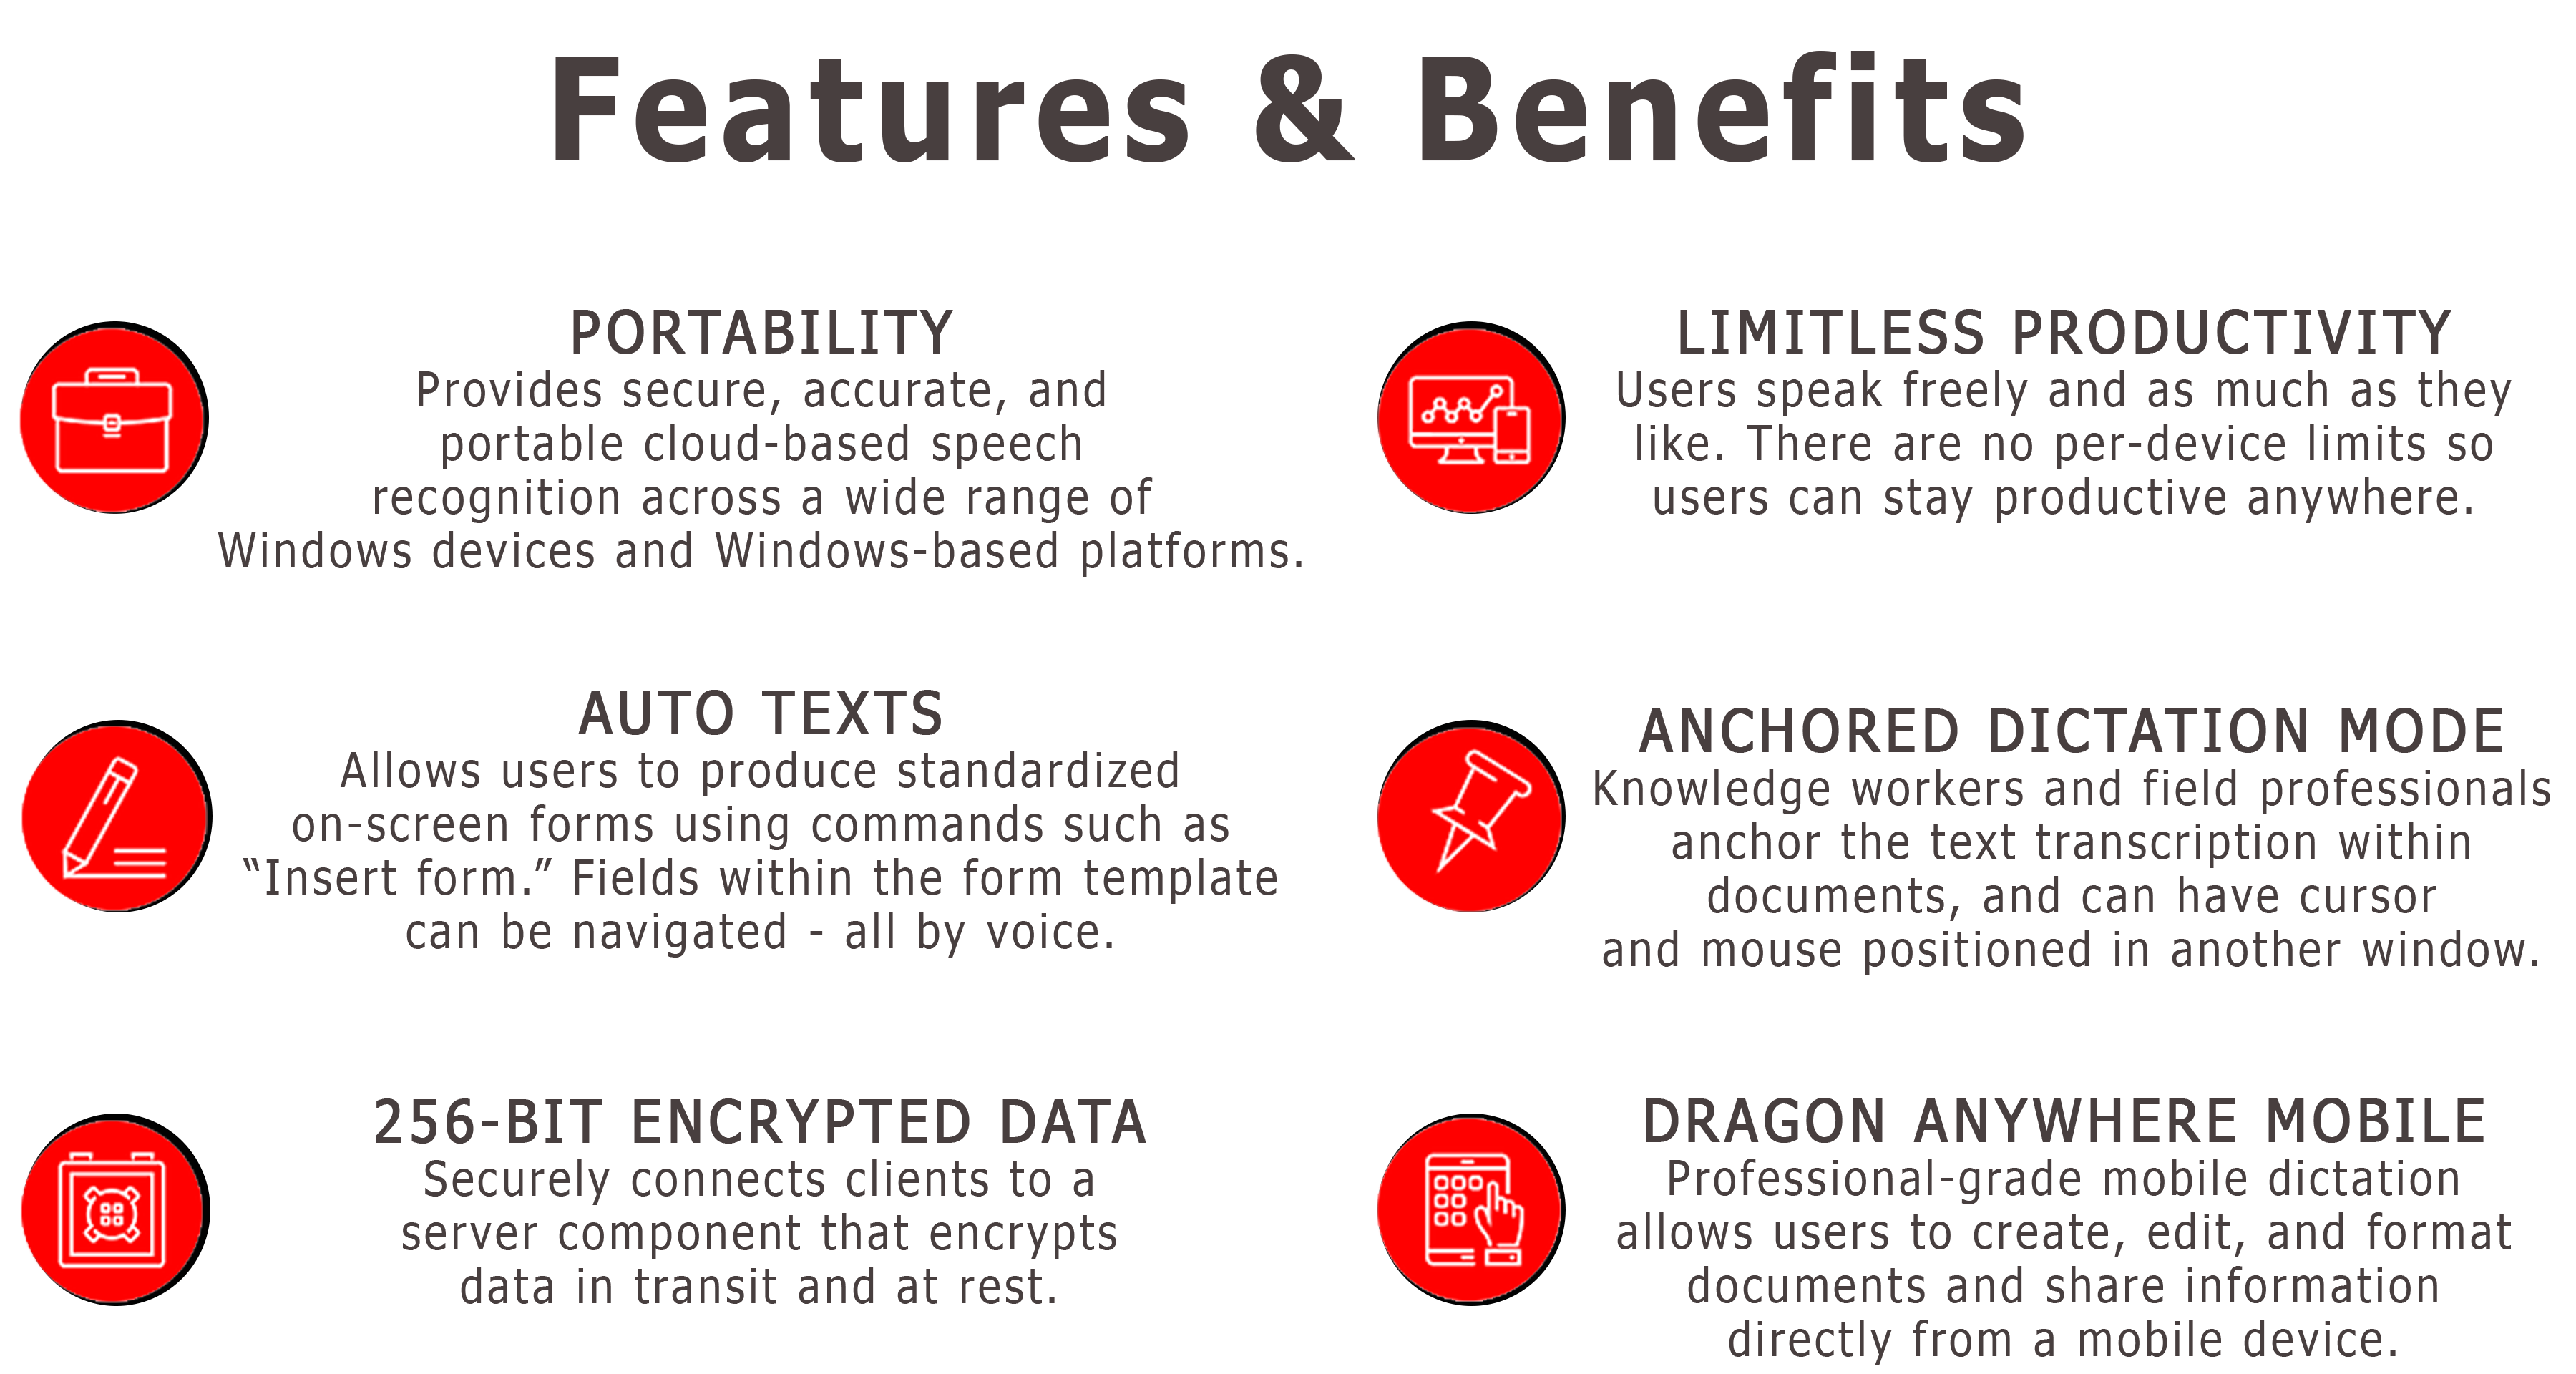 Dragon Professional Anywhere Features and Benefits